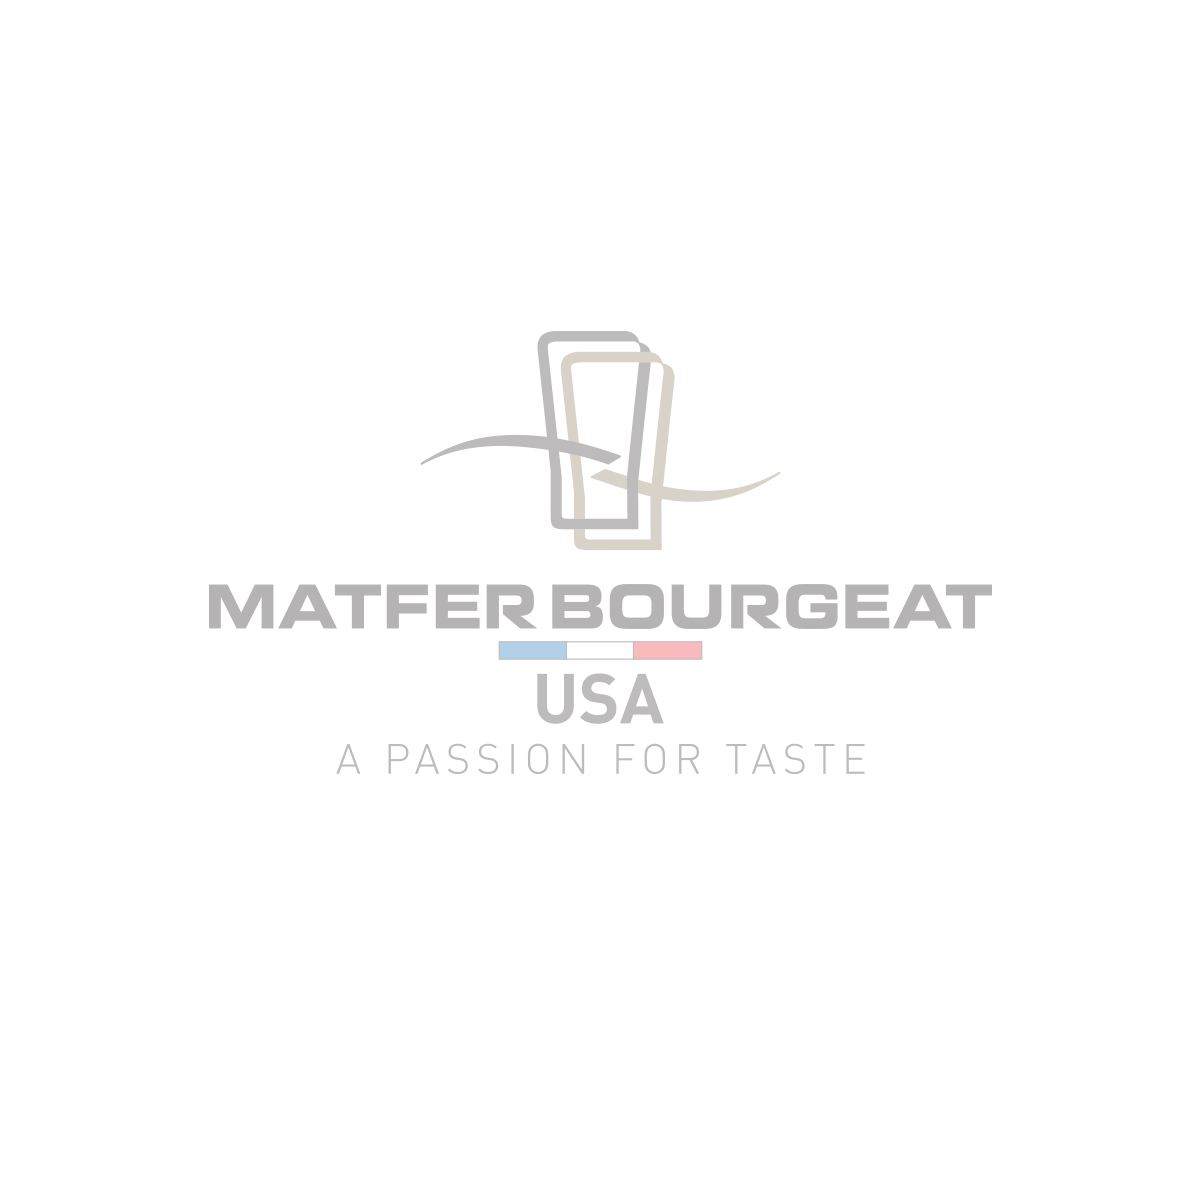 Matfer Bourgeat Excellence Stainless Steel Tall Stockpot w/ Faucet, 9 1/2